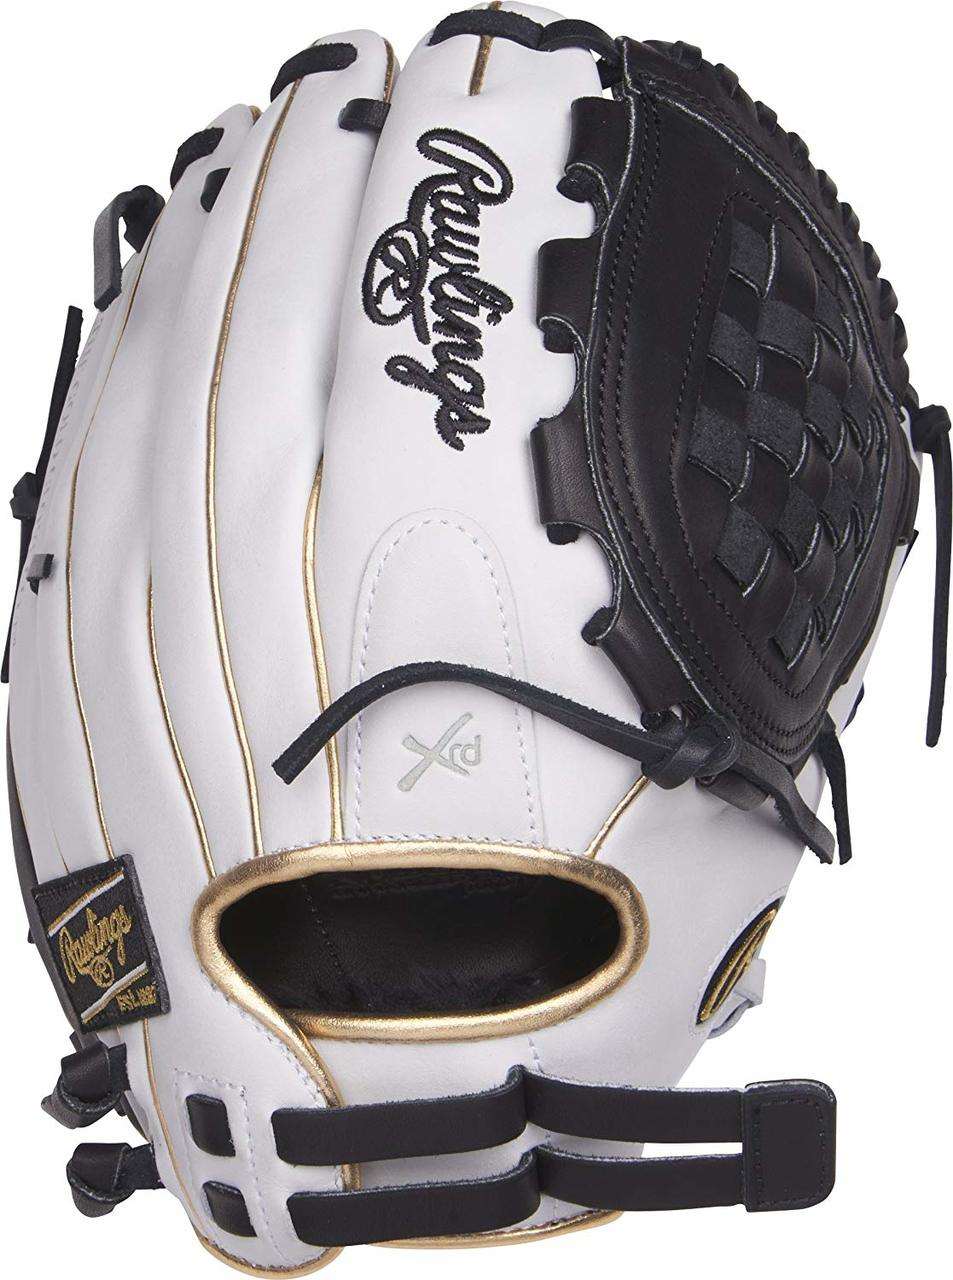 rawlings-liberty-advanced-rla120-3wbg-fastpitch-softball-glove-12-right-hand-throw RLA120-3WBG-RightHandThrow Rawlings 083321435416 Limited Edition Color Series - White/Black/Gold Colorway 12 Inch Womens Model